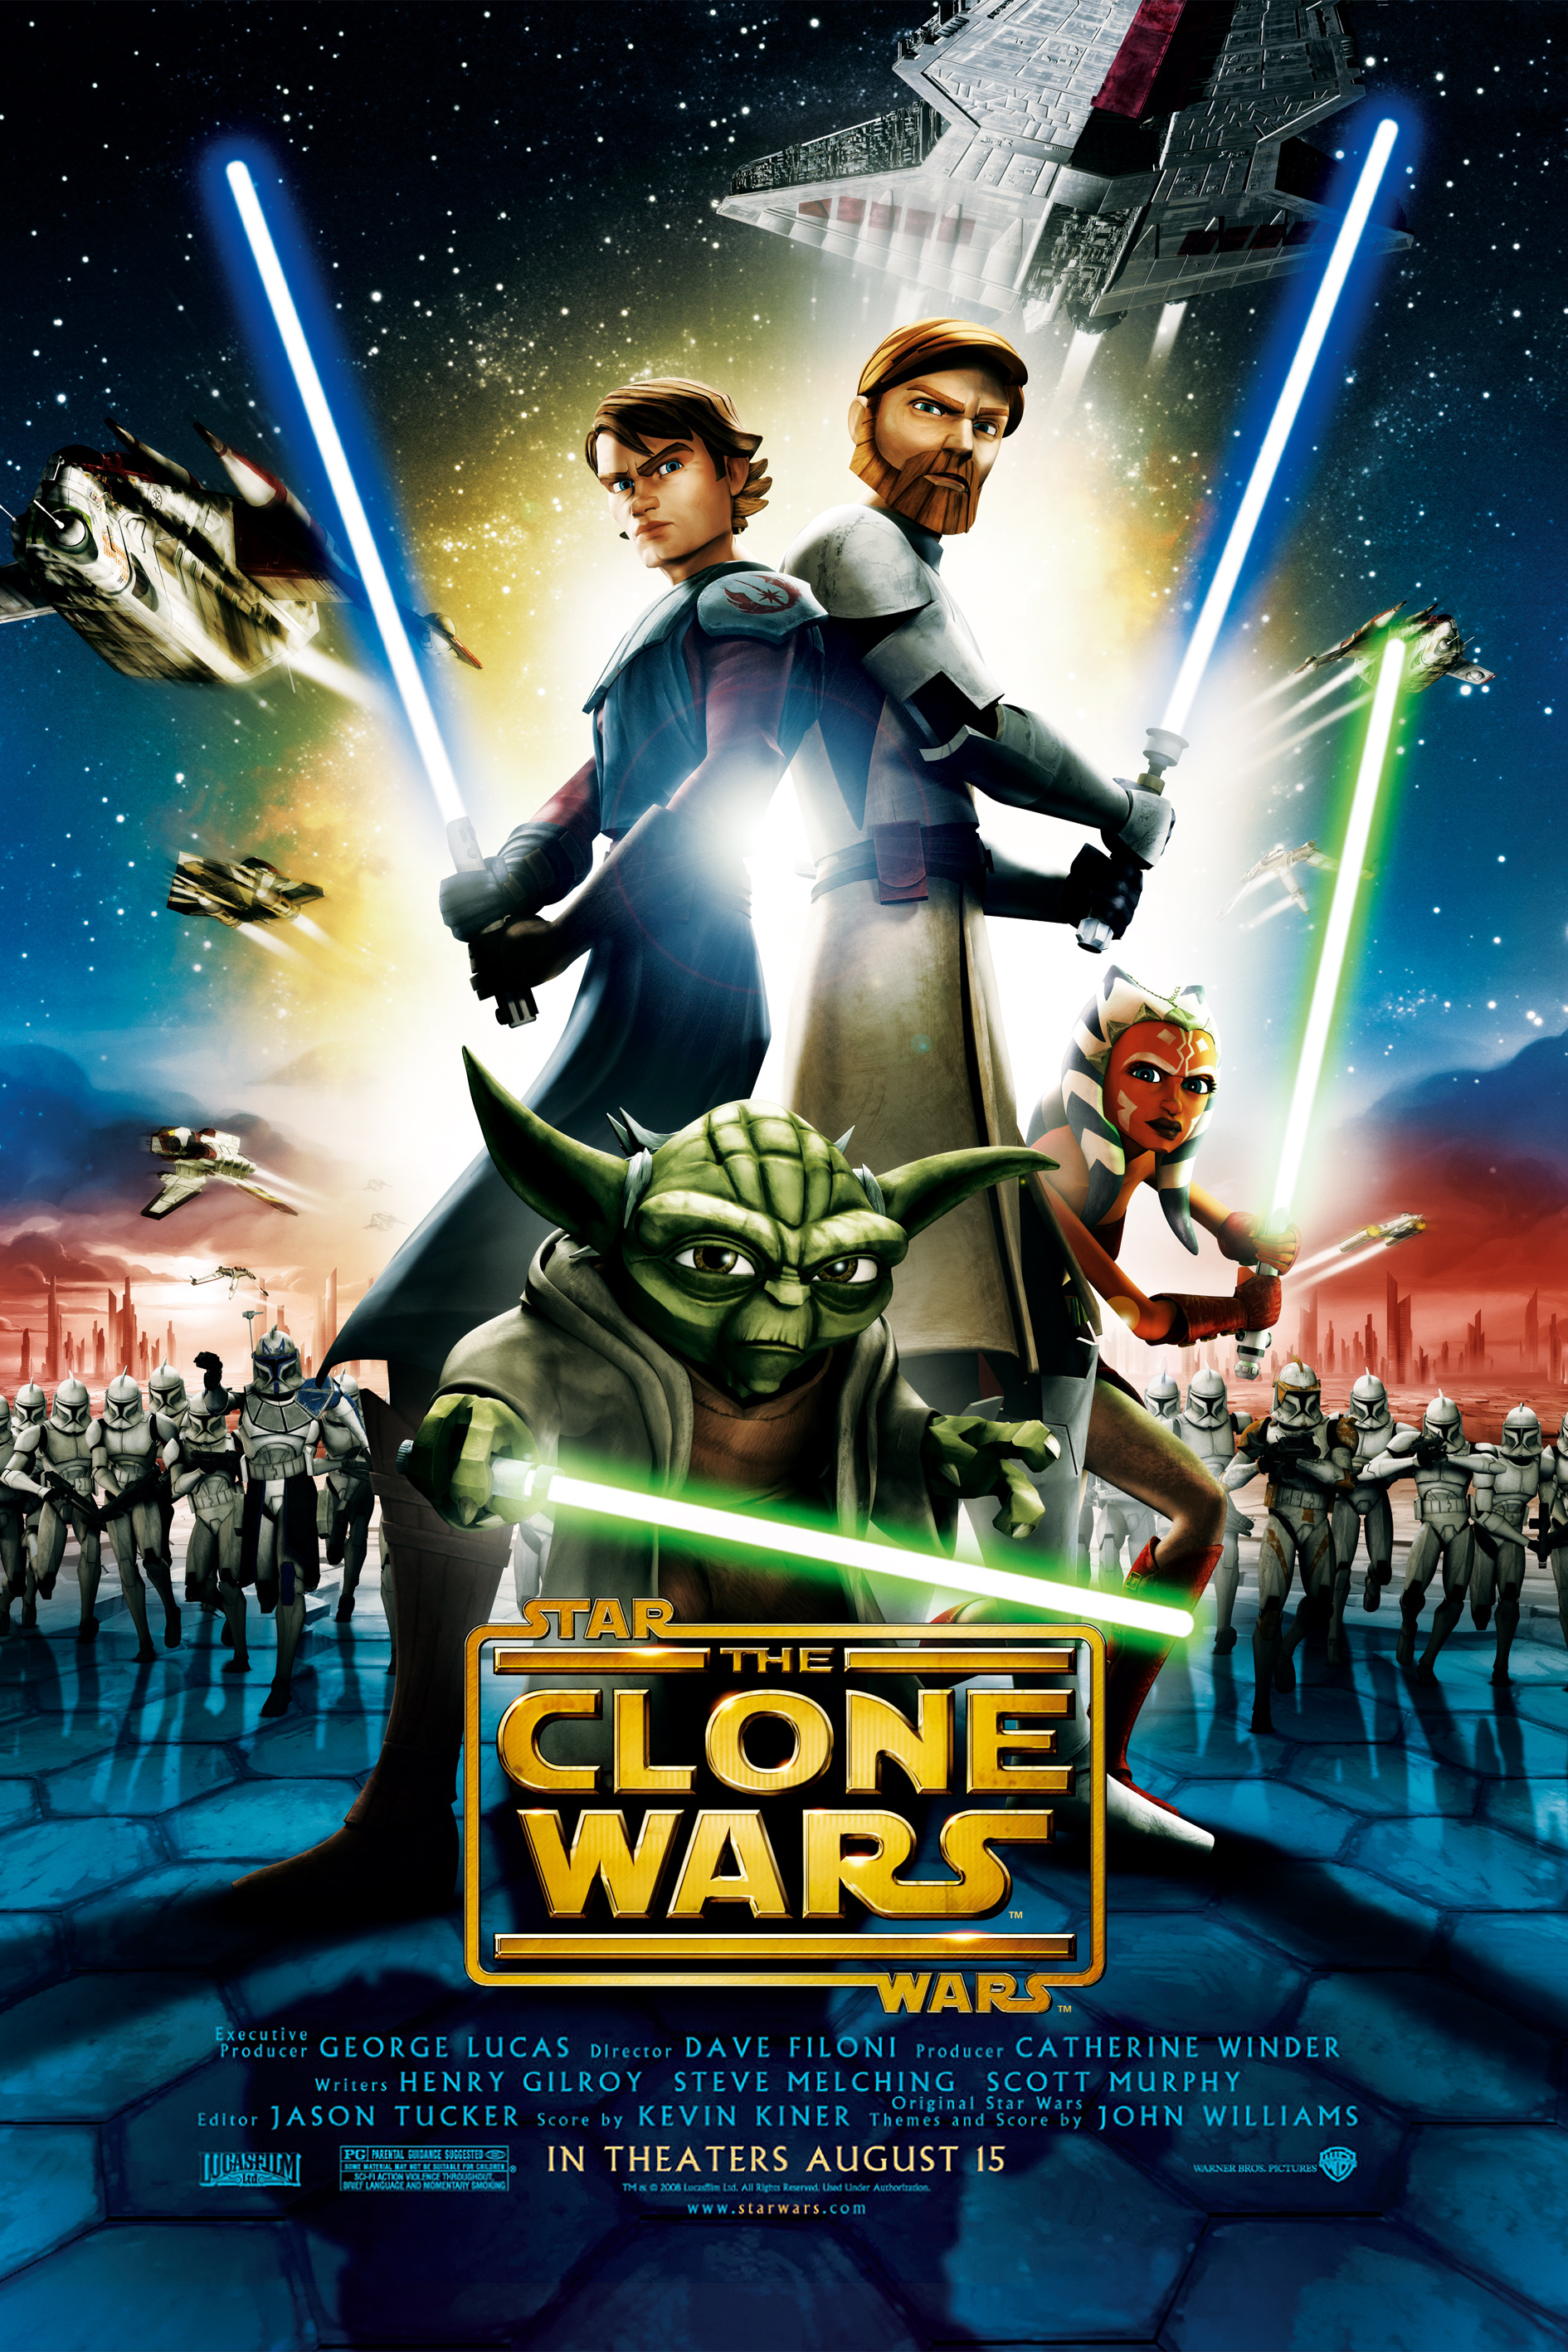 www.starwars the clone wars